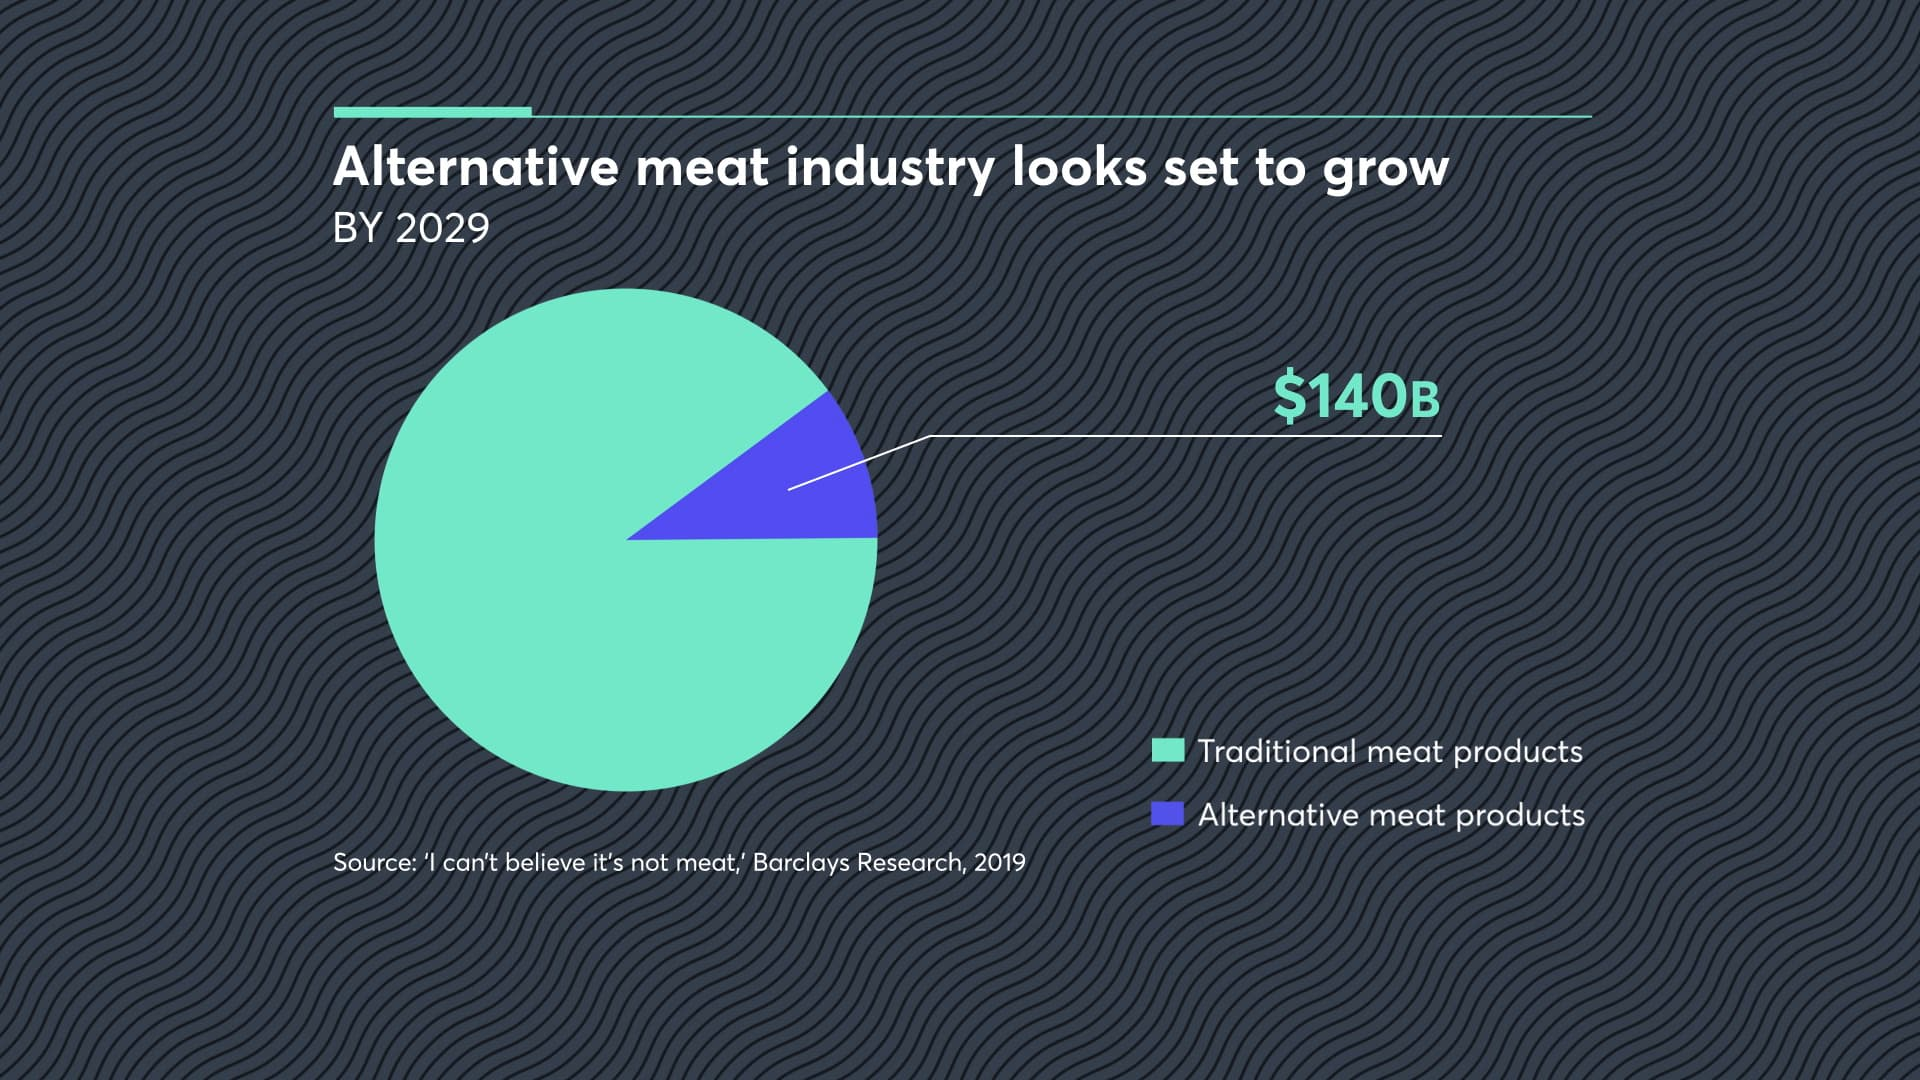 The alternative meat industry is estimated to be worth $140 billion by 2029.